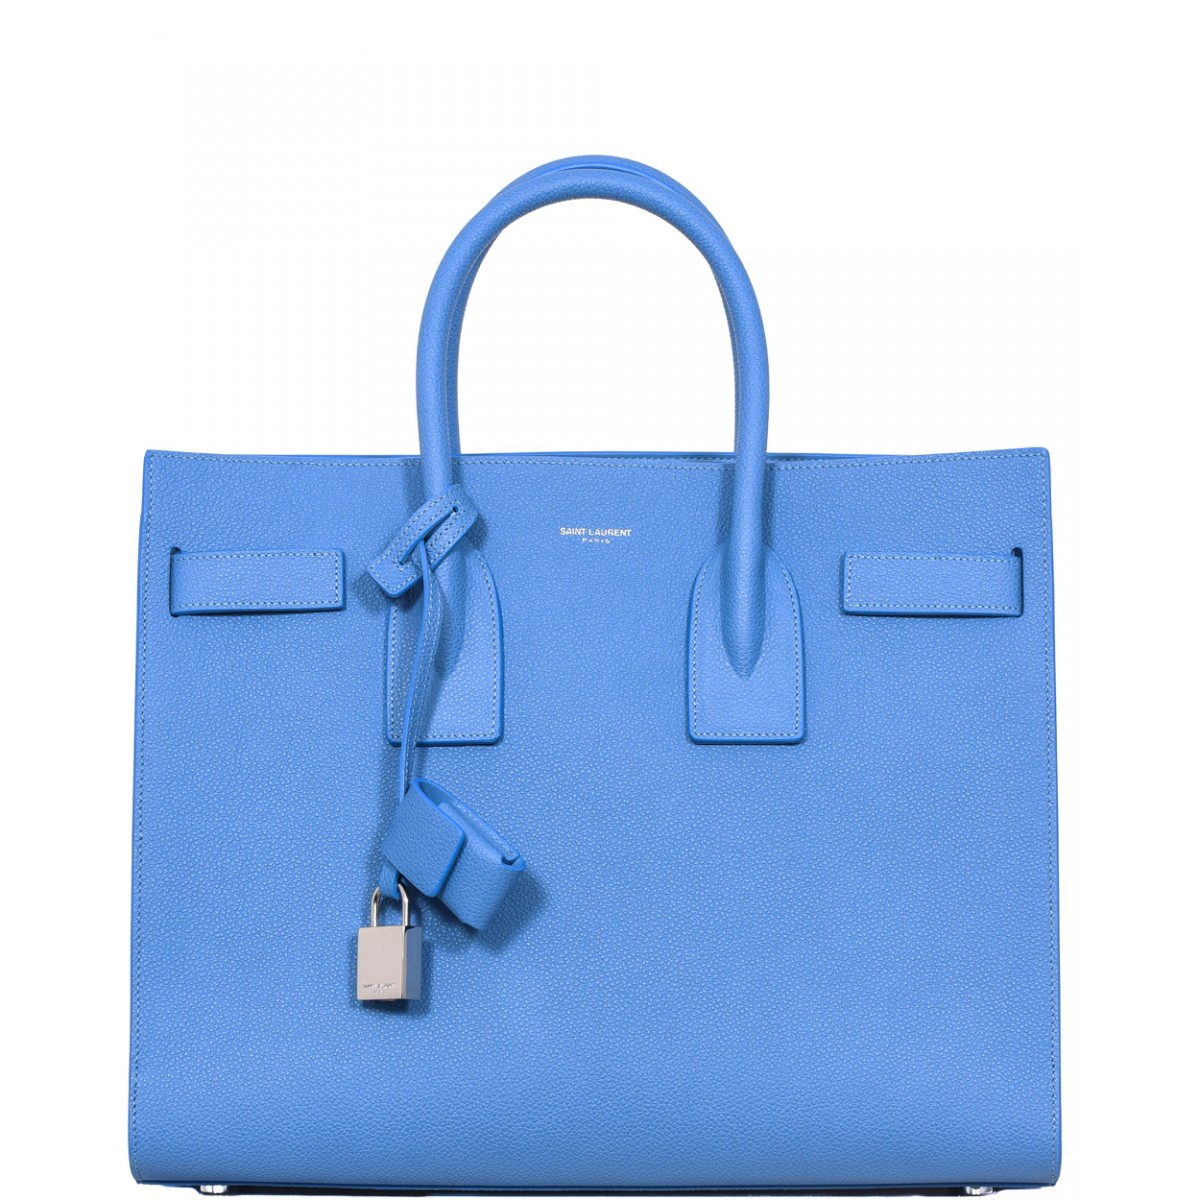 yves saint laurent bags prices - classic small sac de jour bag in royal blue leather